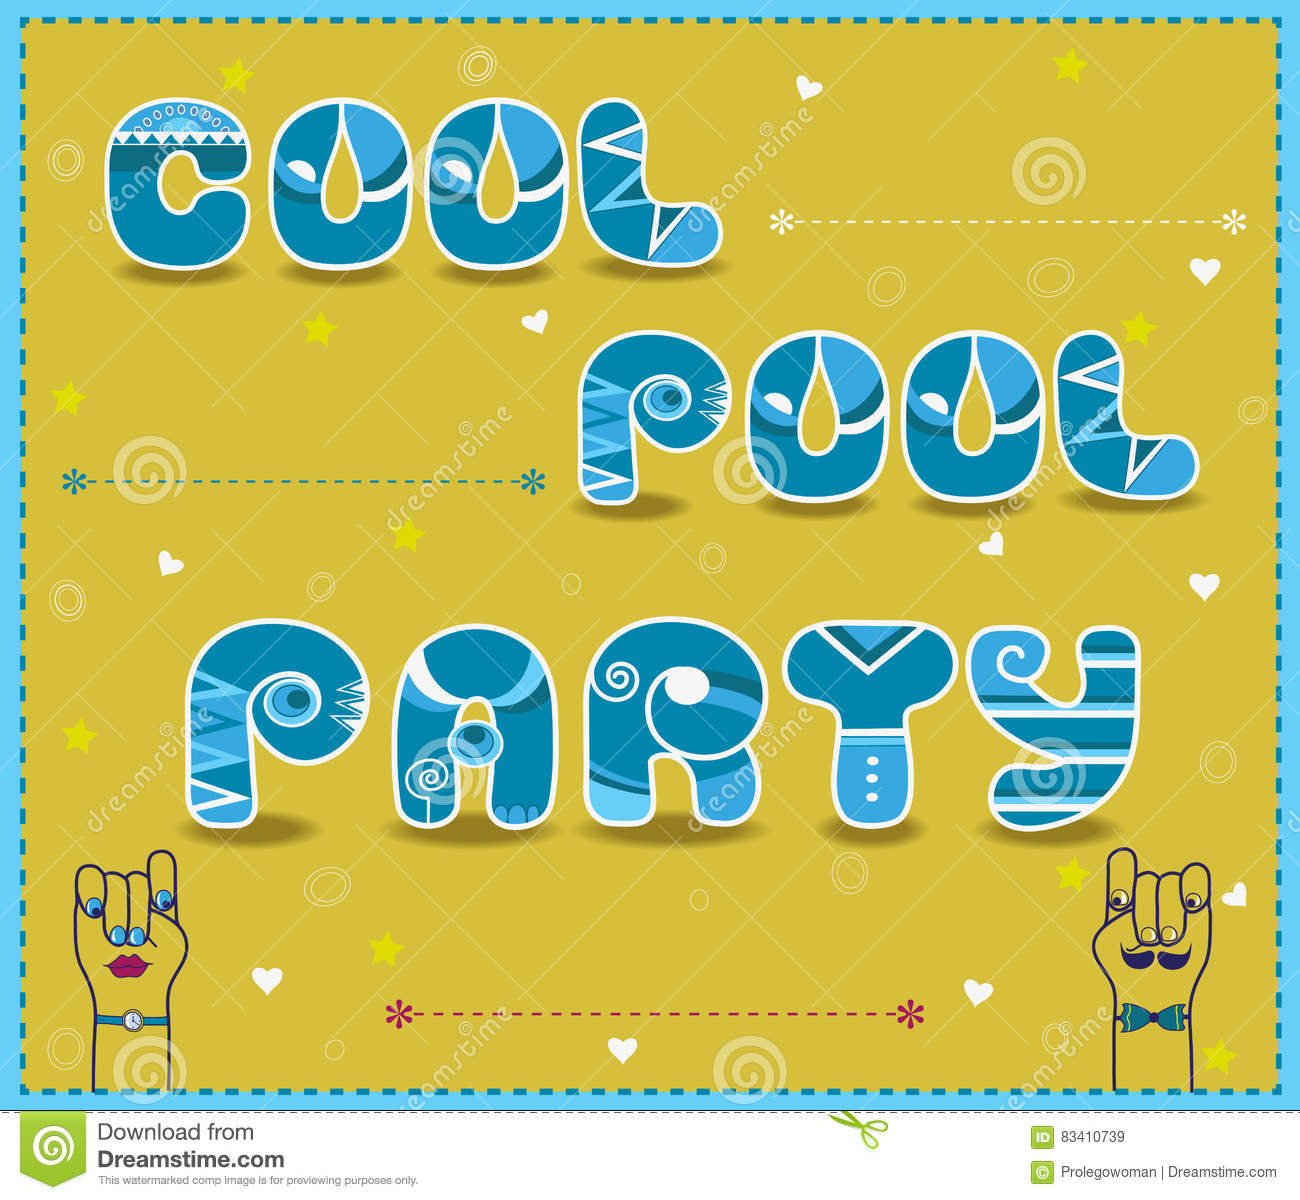 Pool Party Invitation Illustrations 400 Pool Party – Cool Pool Party Invitations